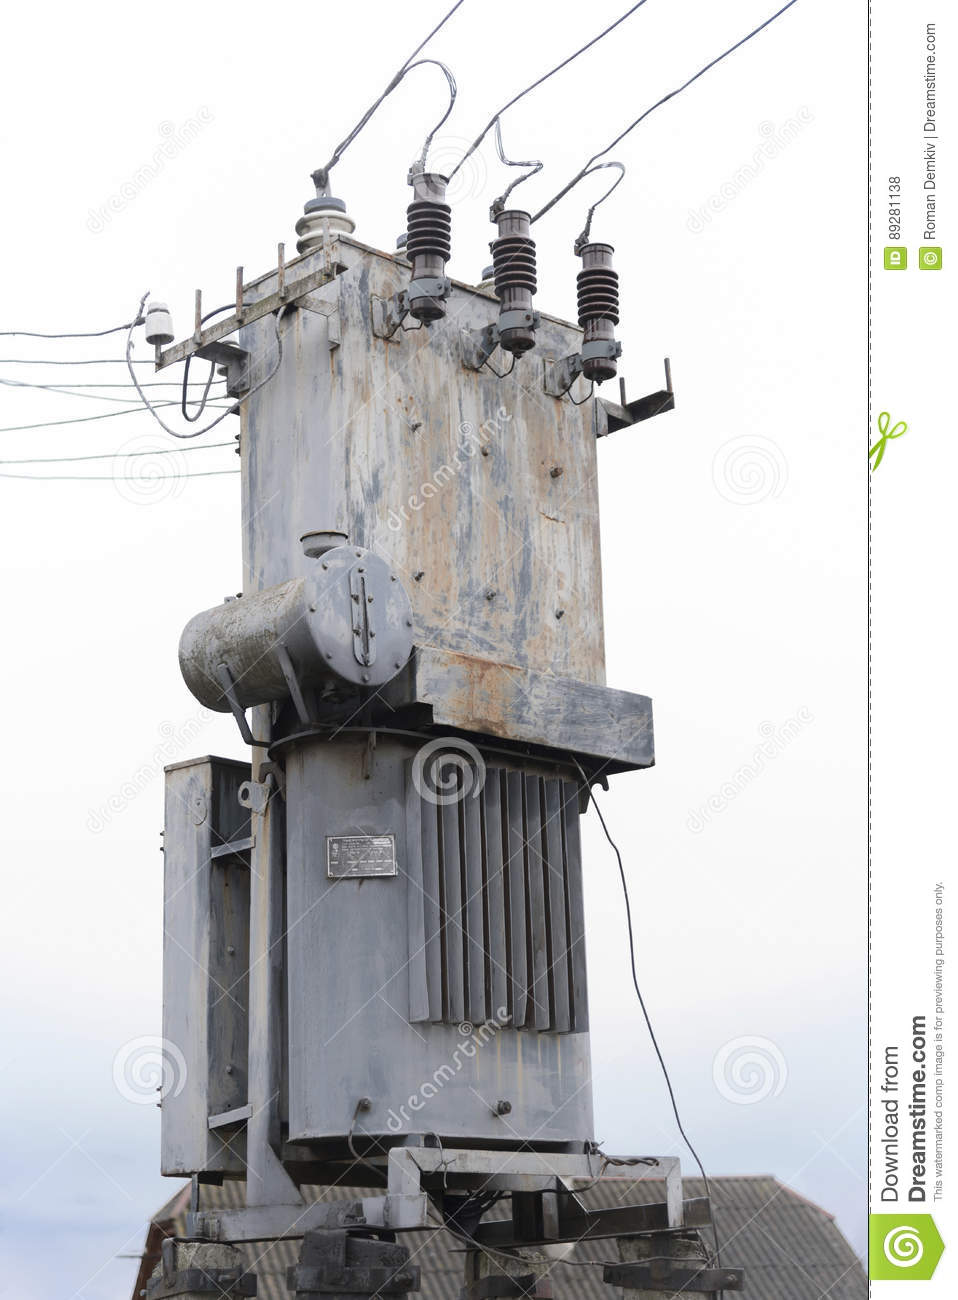 hight resolution of old three phase power transformer